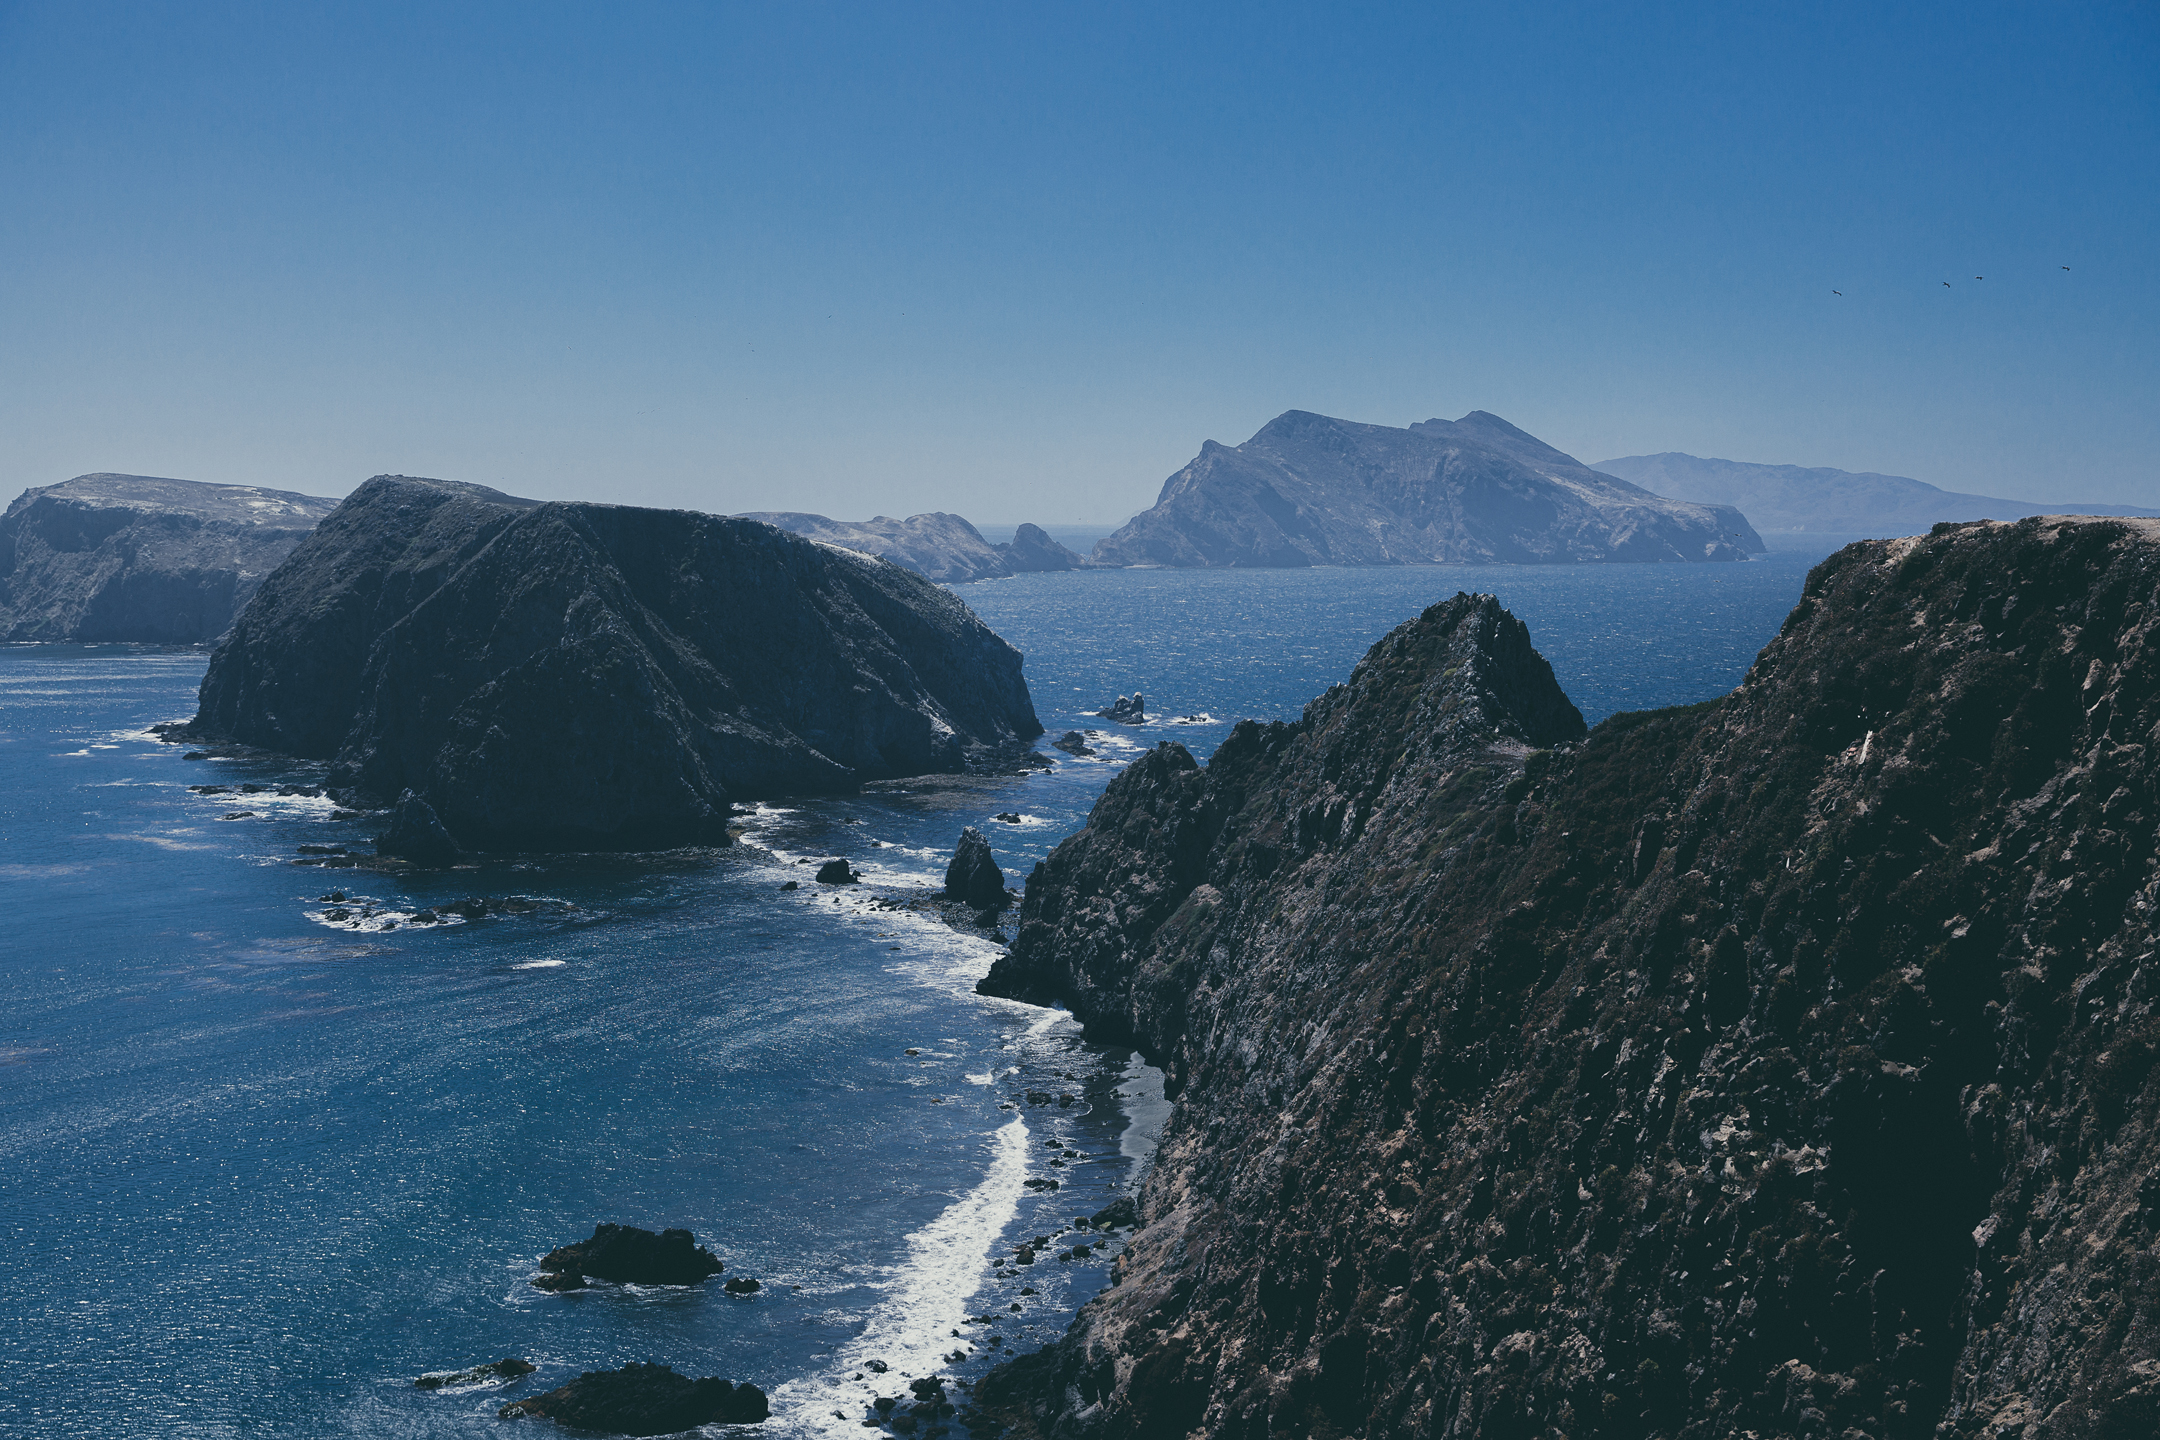 TRAVEL photos: Anacapa Island, Channel Islands